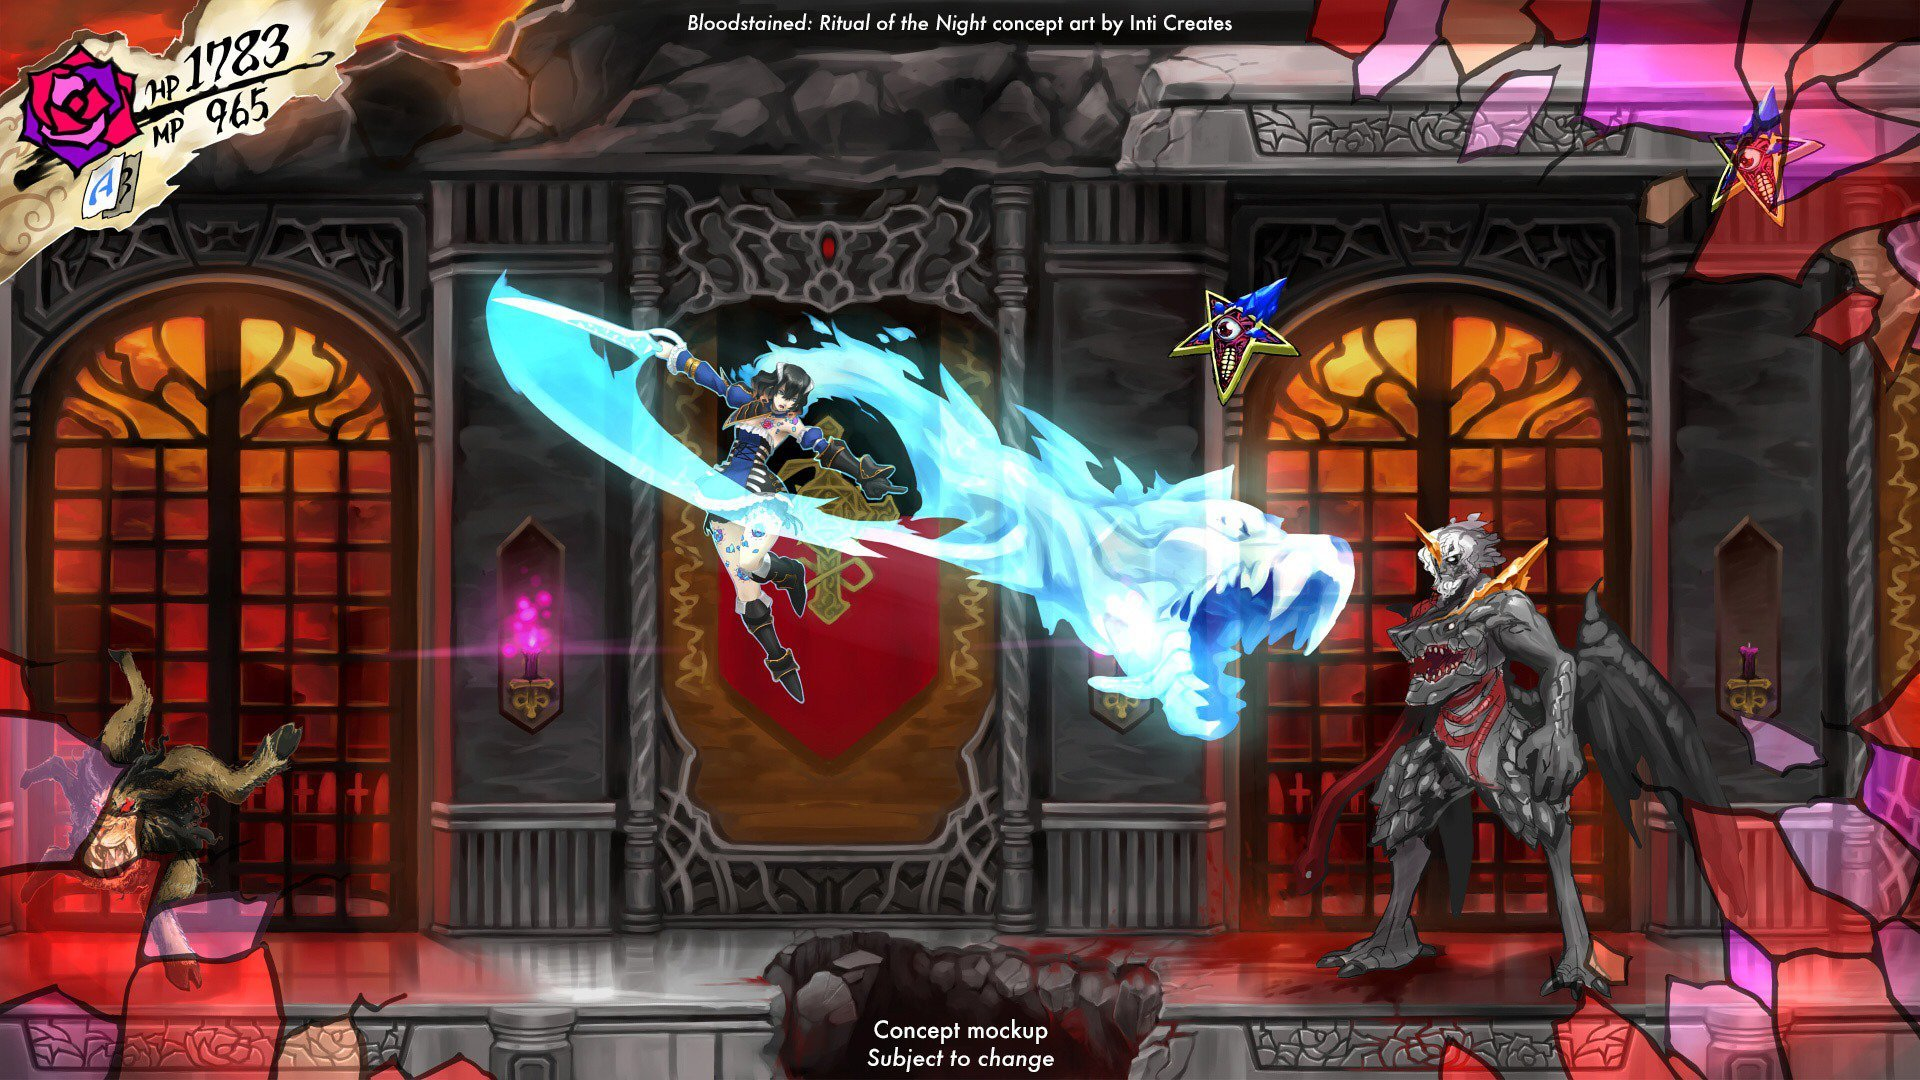 Inti Creates is no longer working on Bloodstained: Ritual of the Night's main game screenshot